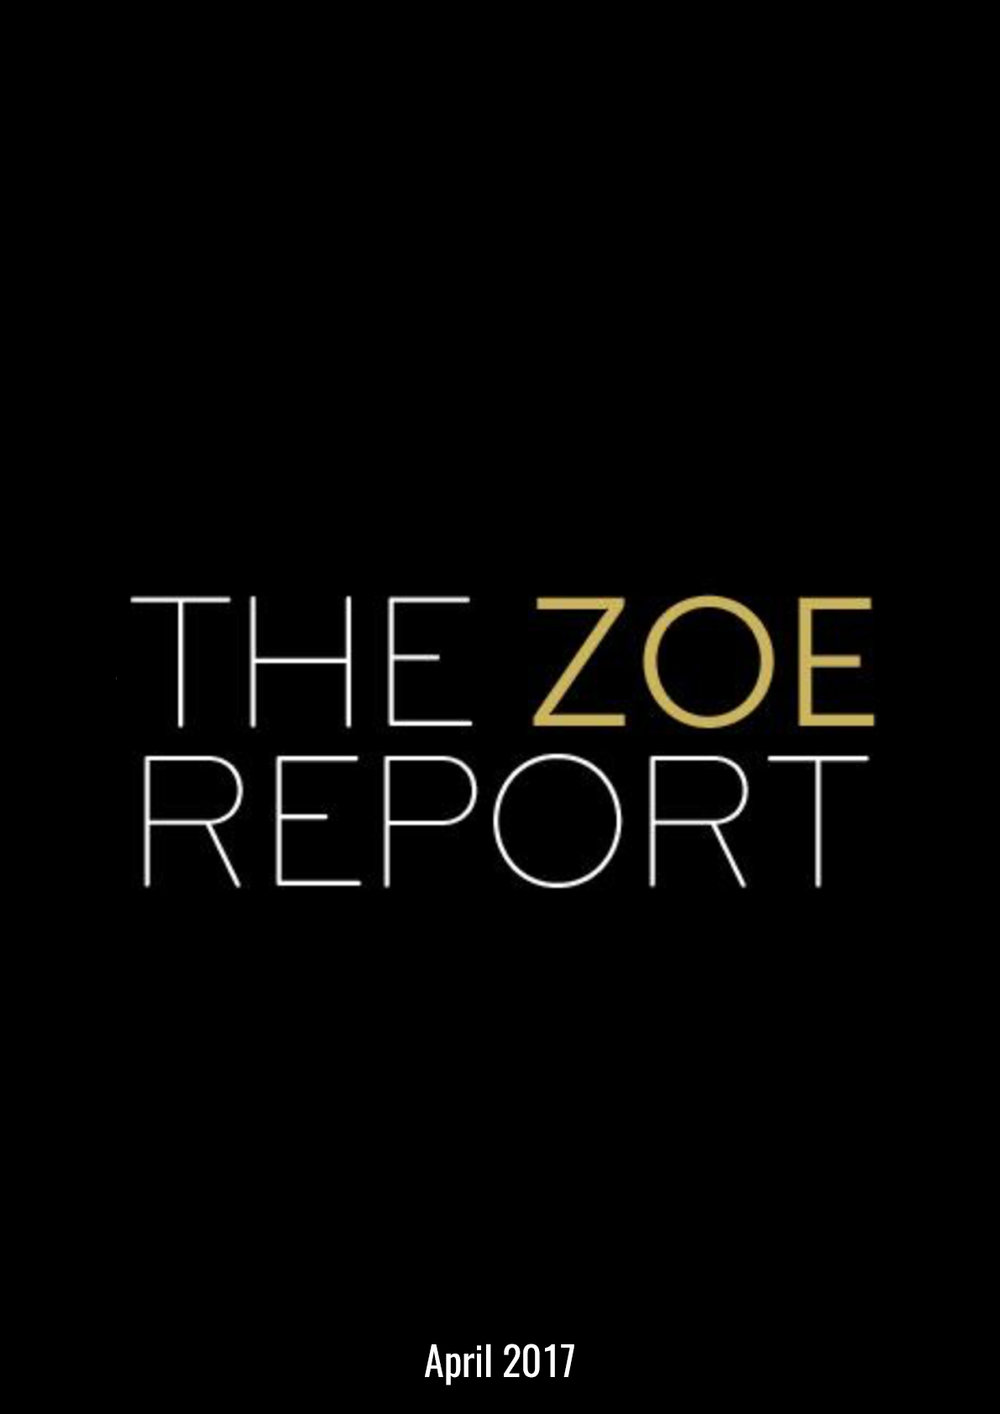 The Zoe Report April 2017.jpg